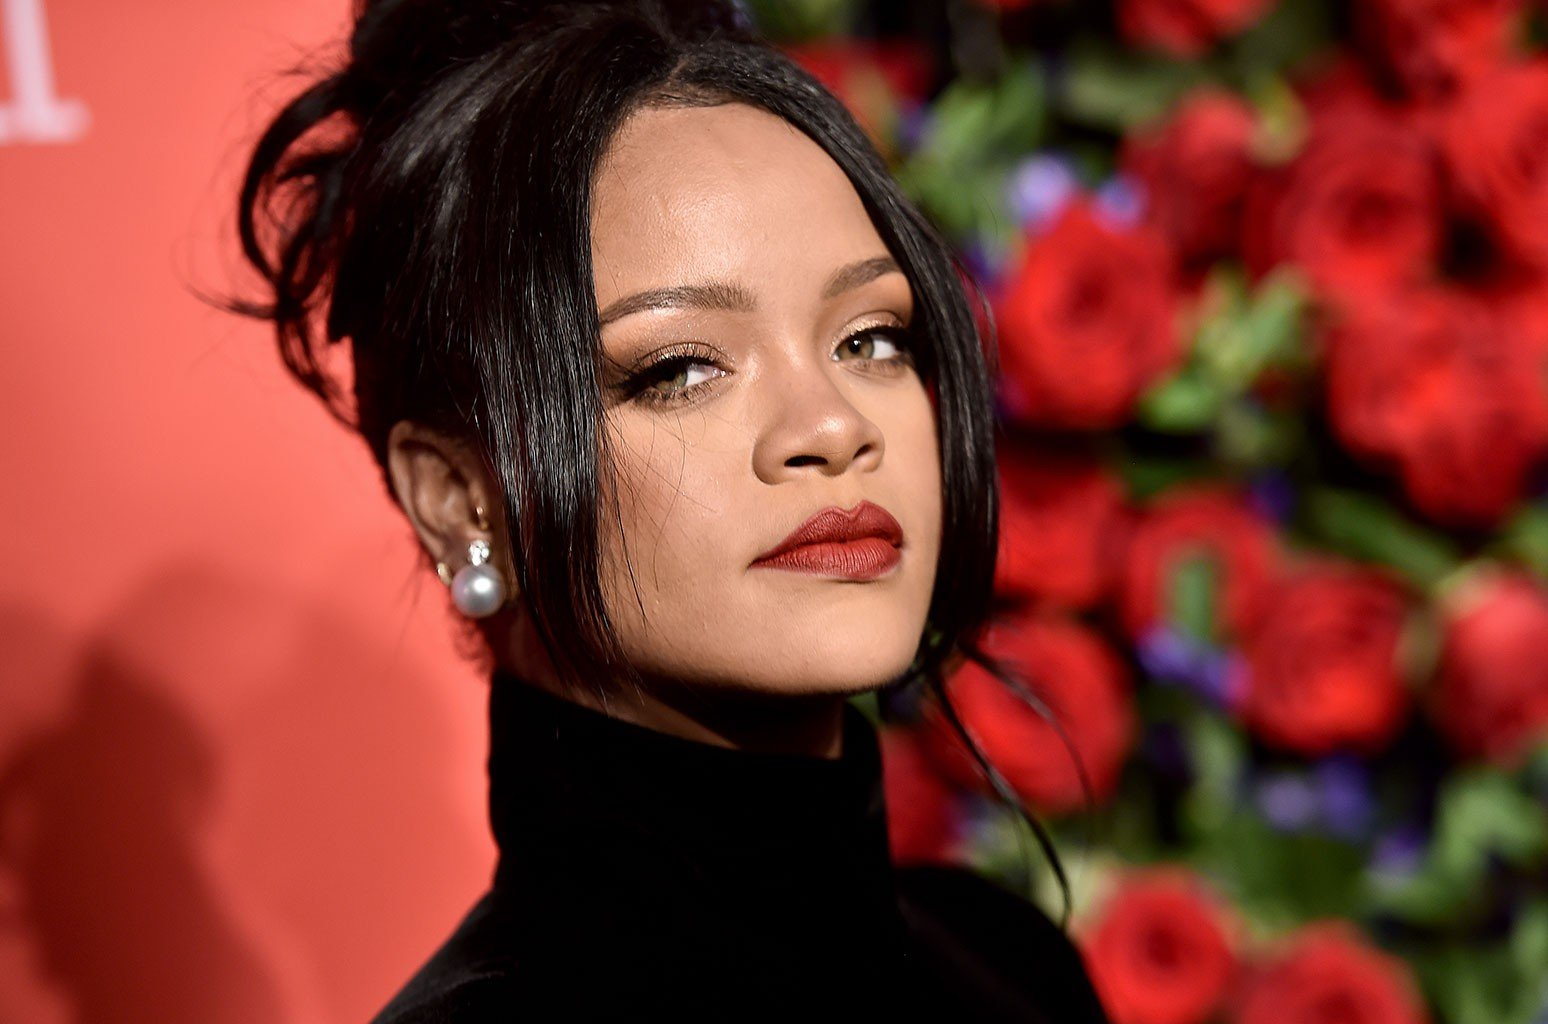 Rihanna Drops Her Clothes And Shows Out For The 'Gram – See The Photo That Has Fans Losing Their Minds